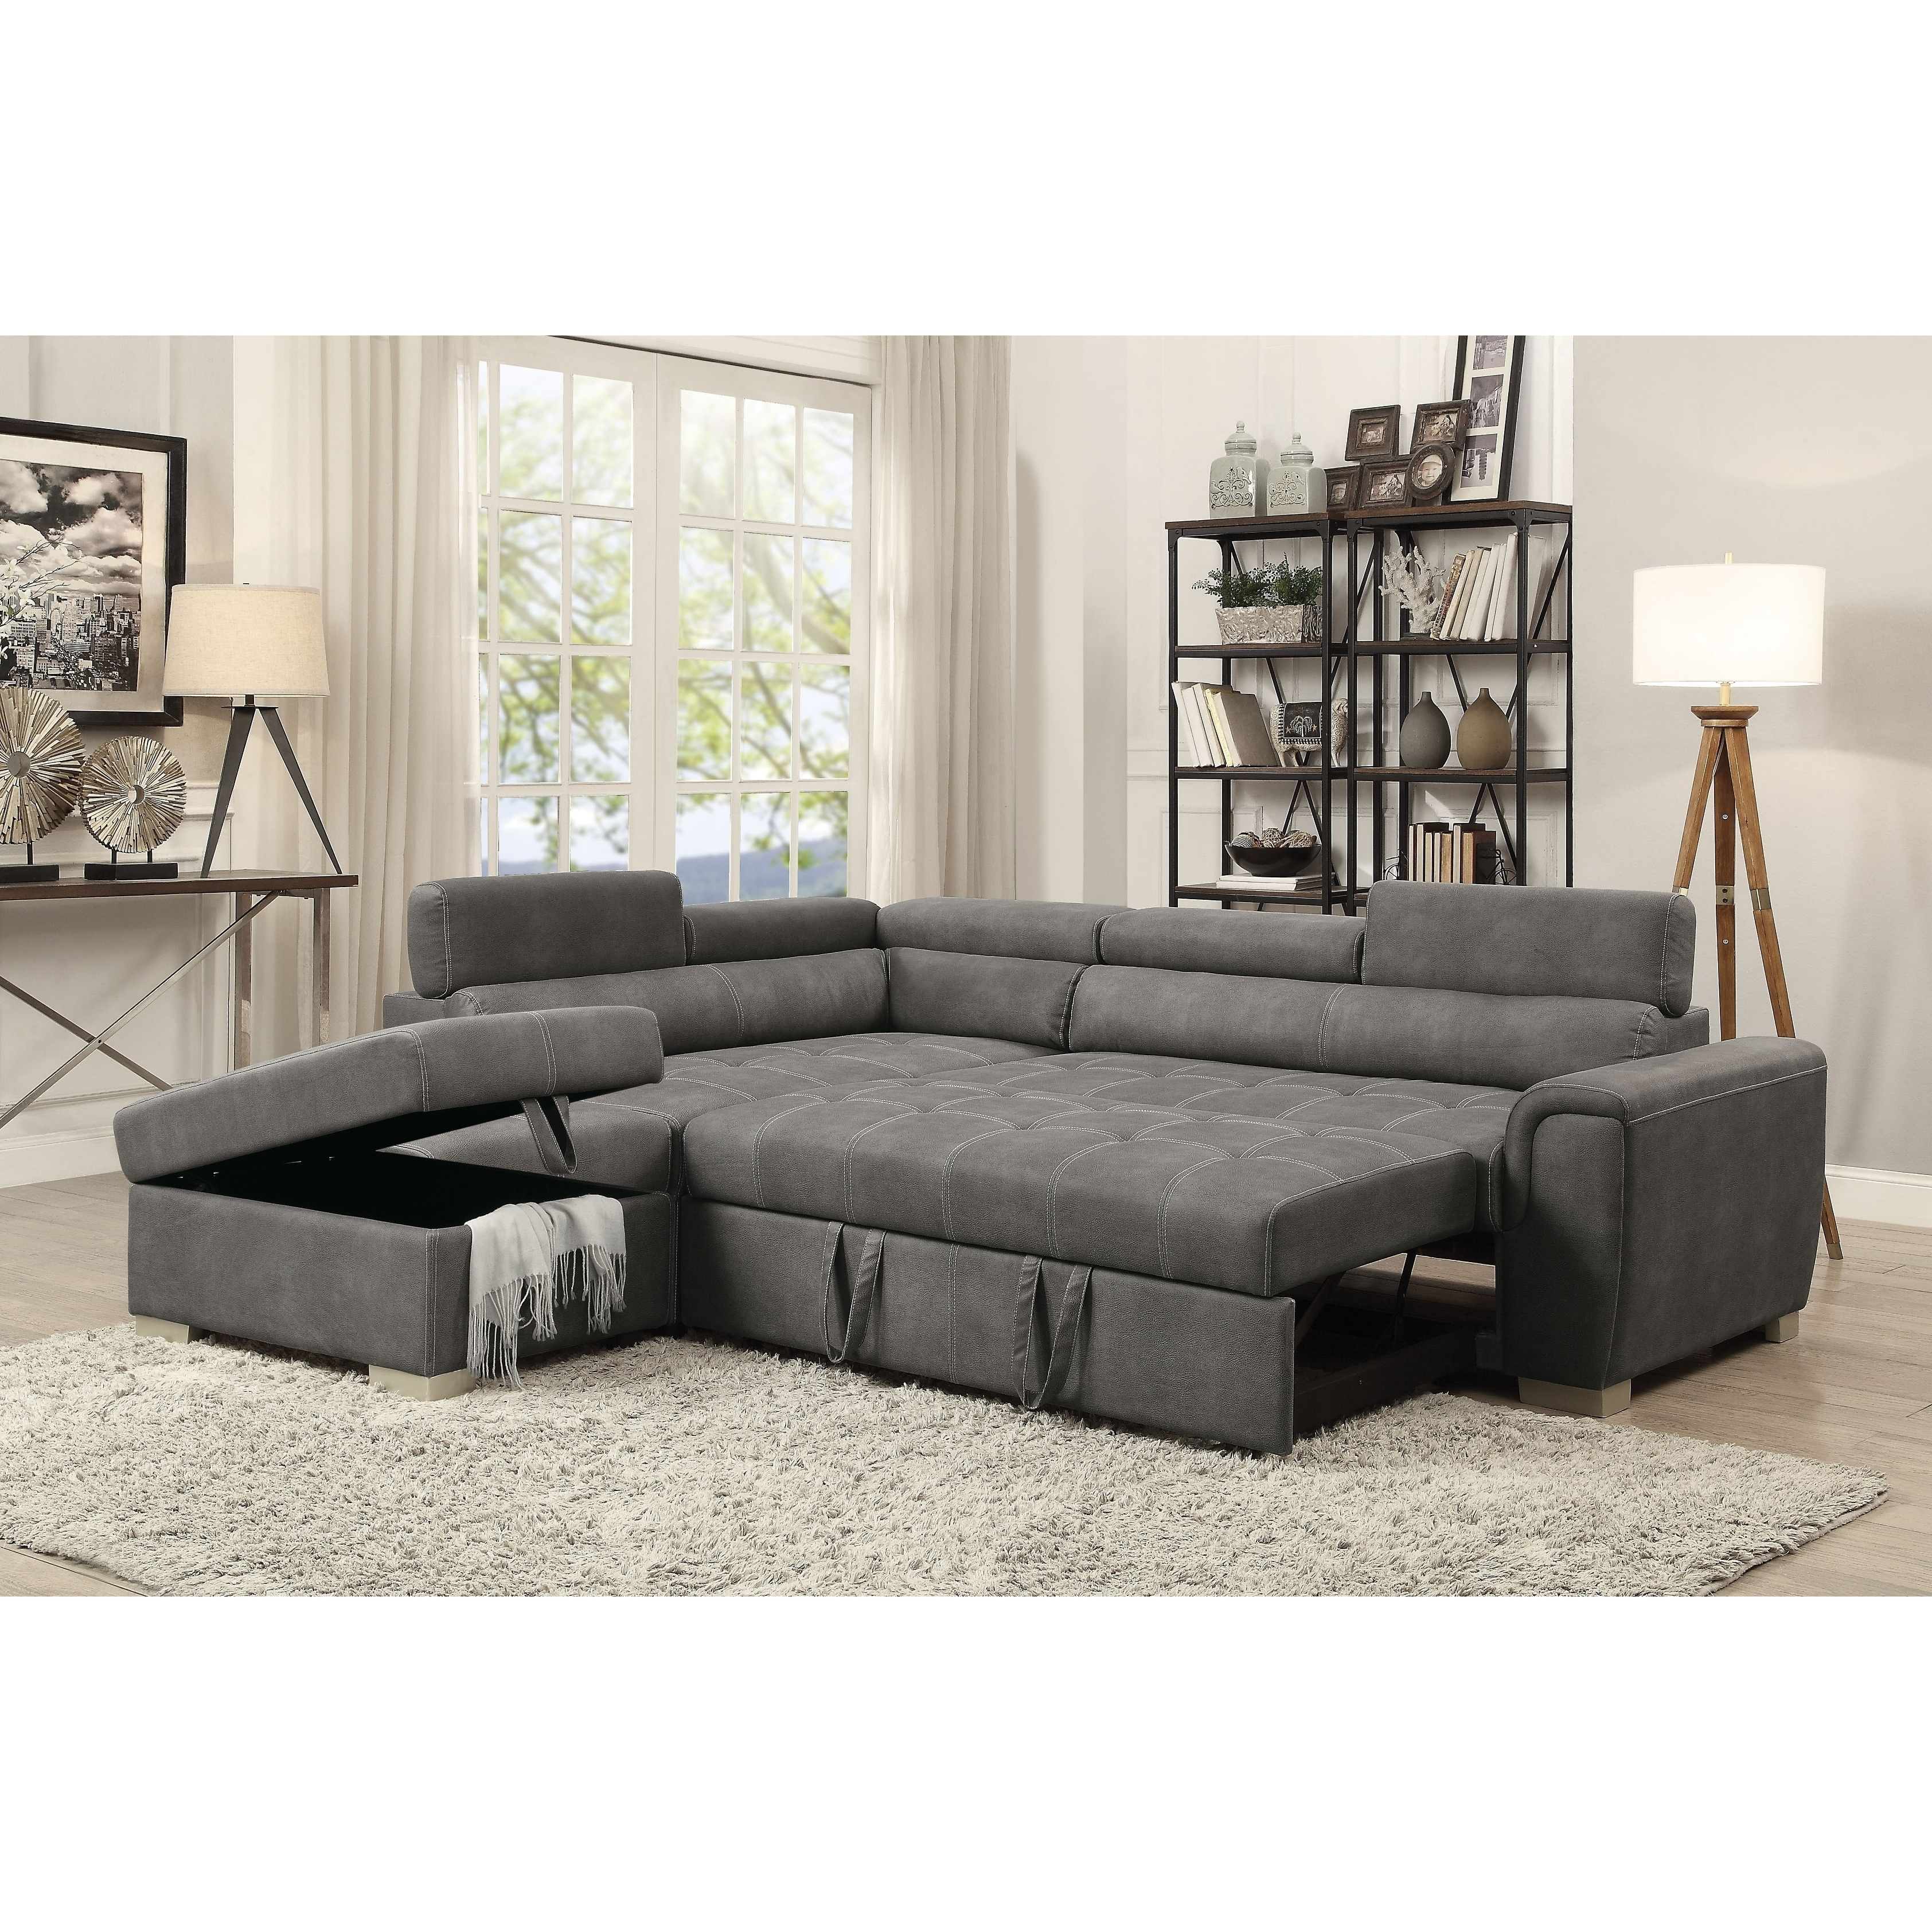 Sofas With Chaise And Ottoman Within Latest Acme Thelma Grey Microfiber L Shaped Sectional Sofa With Sleeper (View 13 of 15)